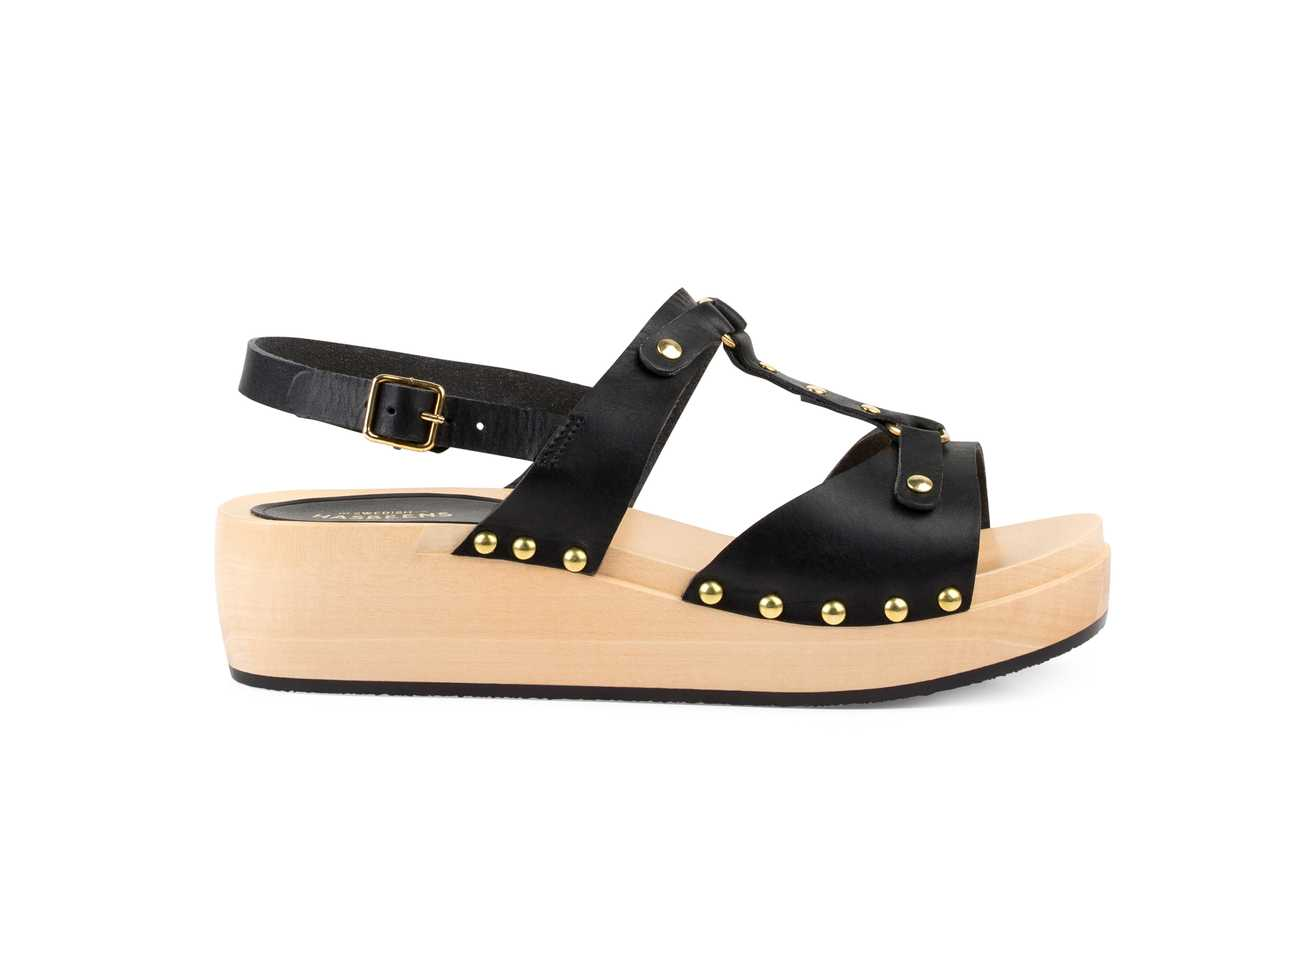 Rivet Sandal Black